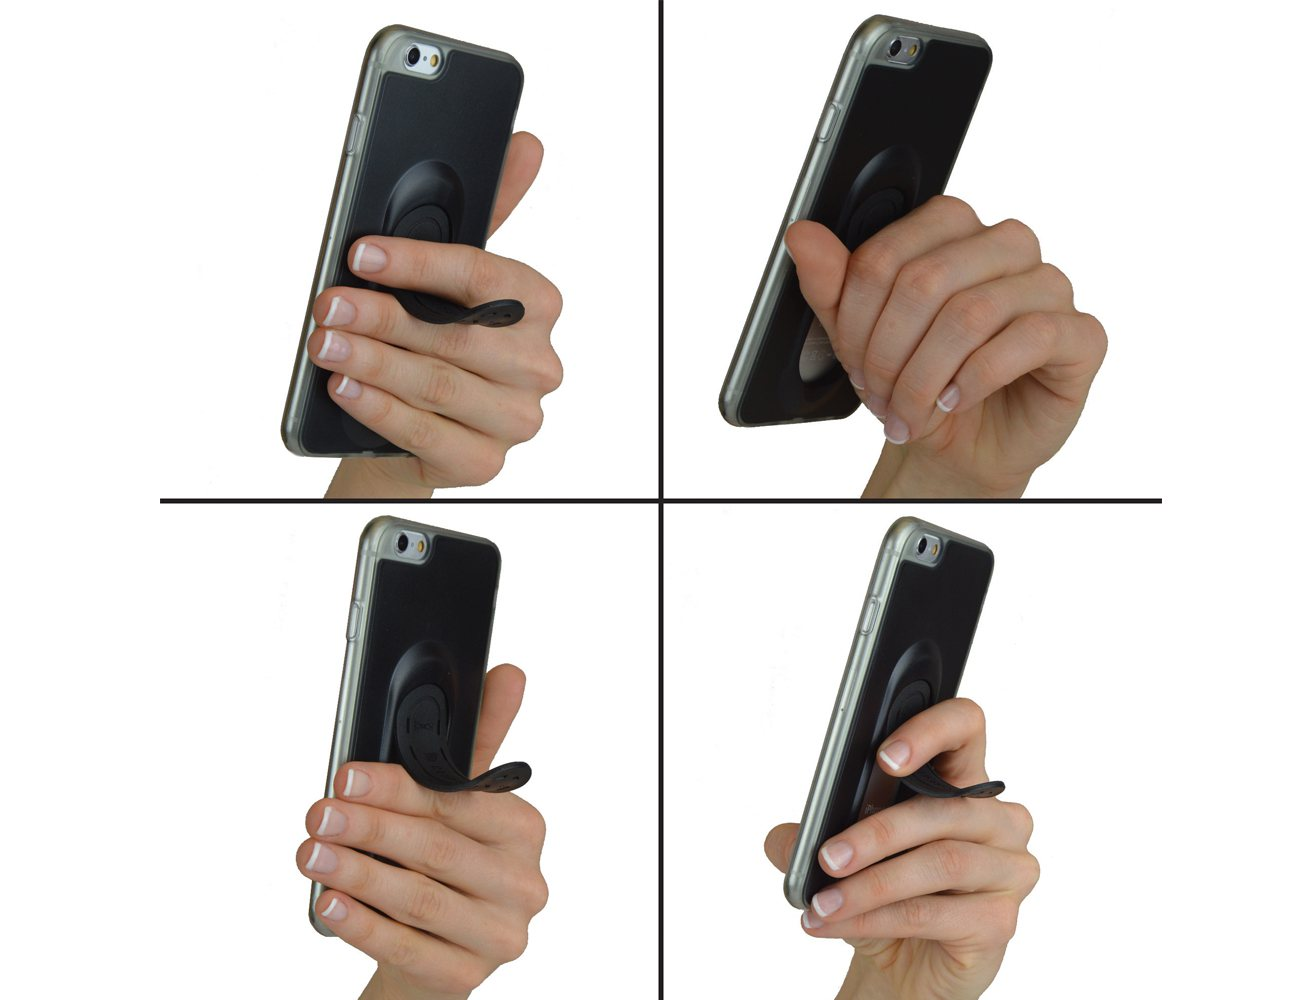 clipstic-3-in-1-mount-case-for-iphone-6-by-scooch-06